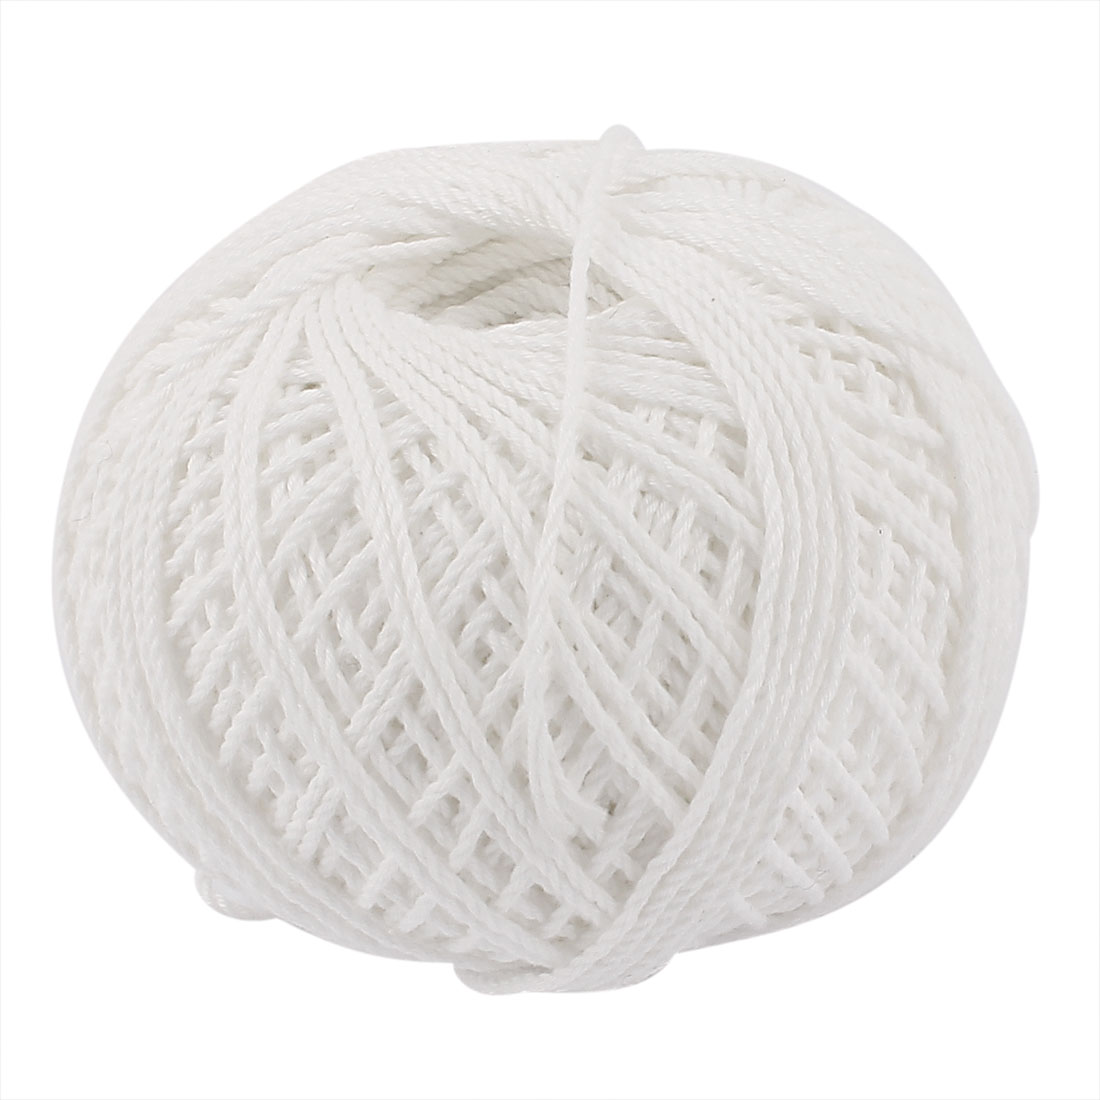 White Cotton Packaging Label Binding Sewing Twine String Rope 100M